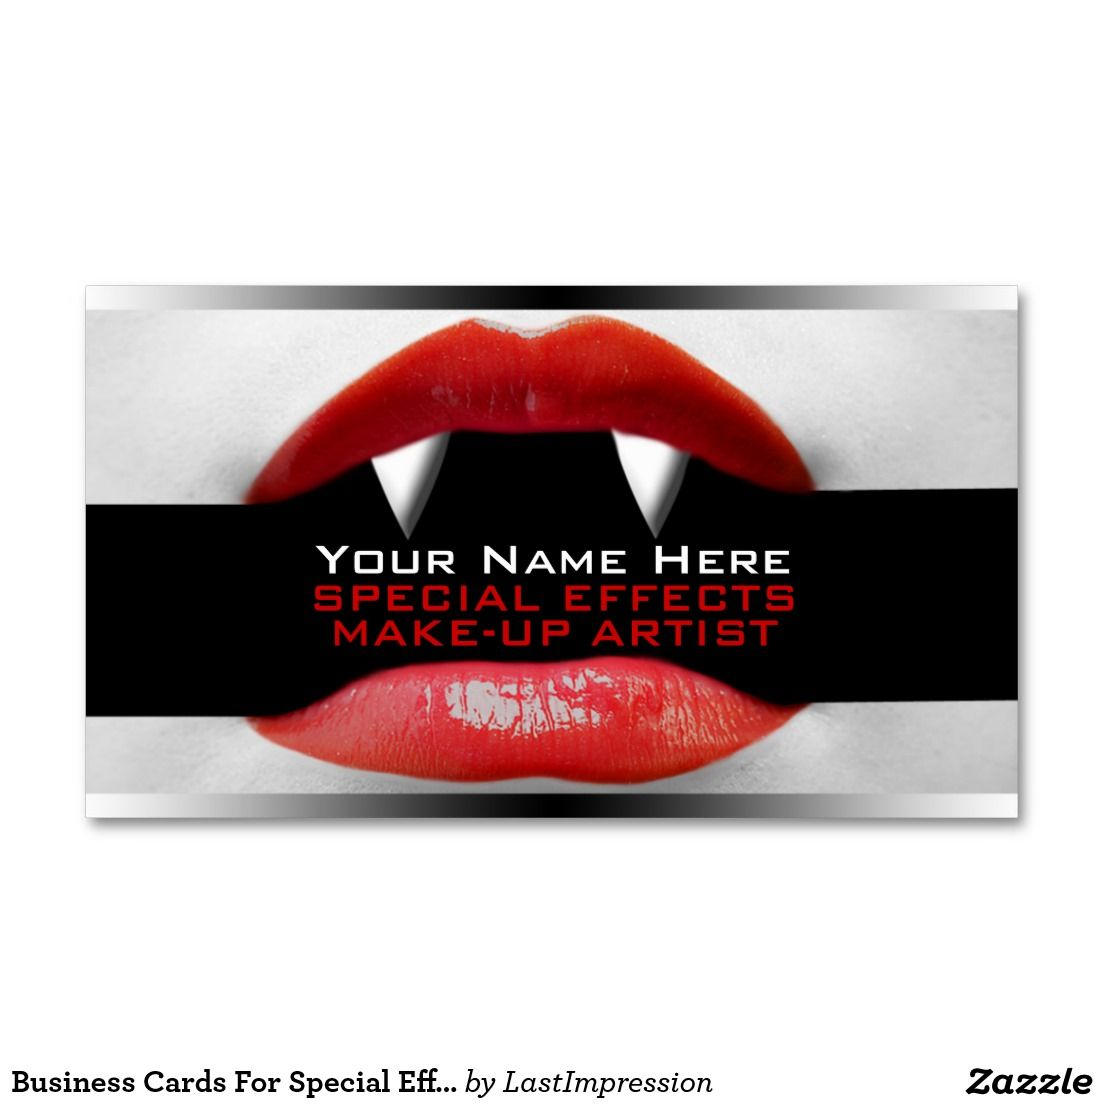 Business cards for special effects makeup artists zazzle